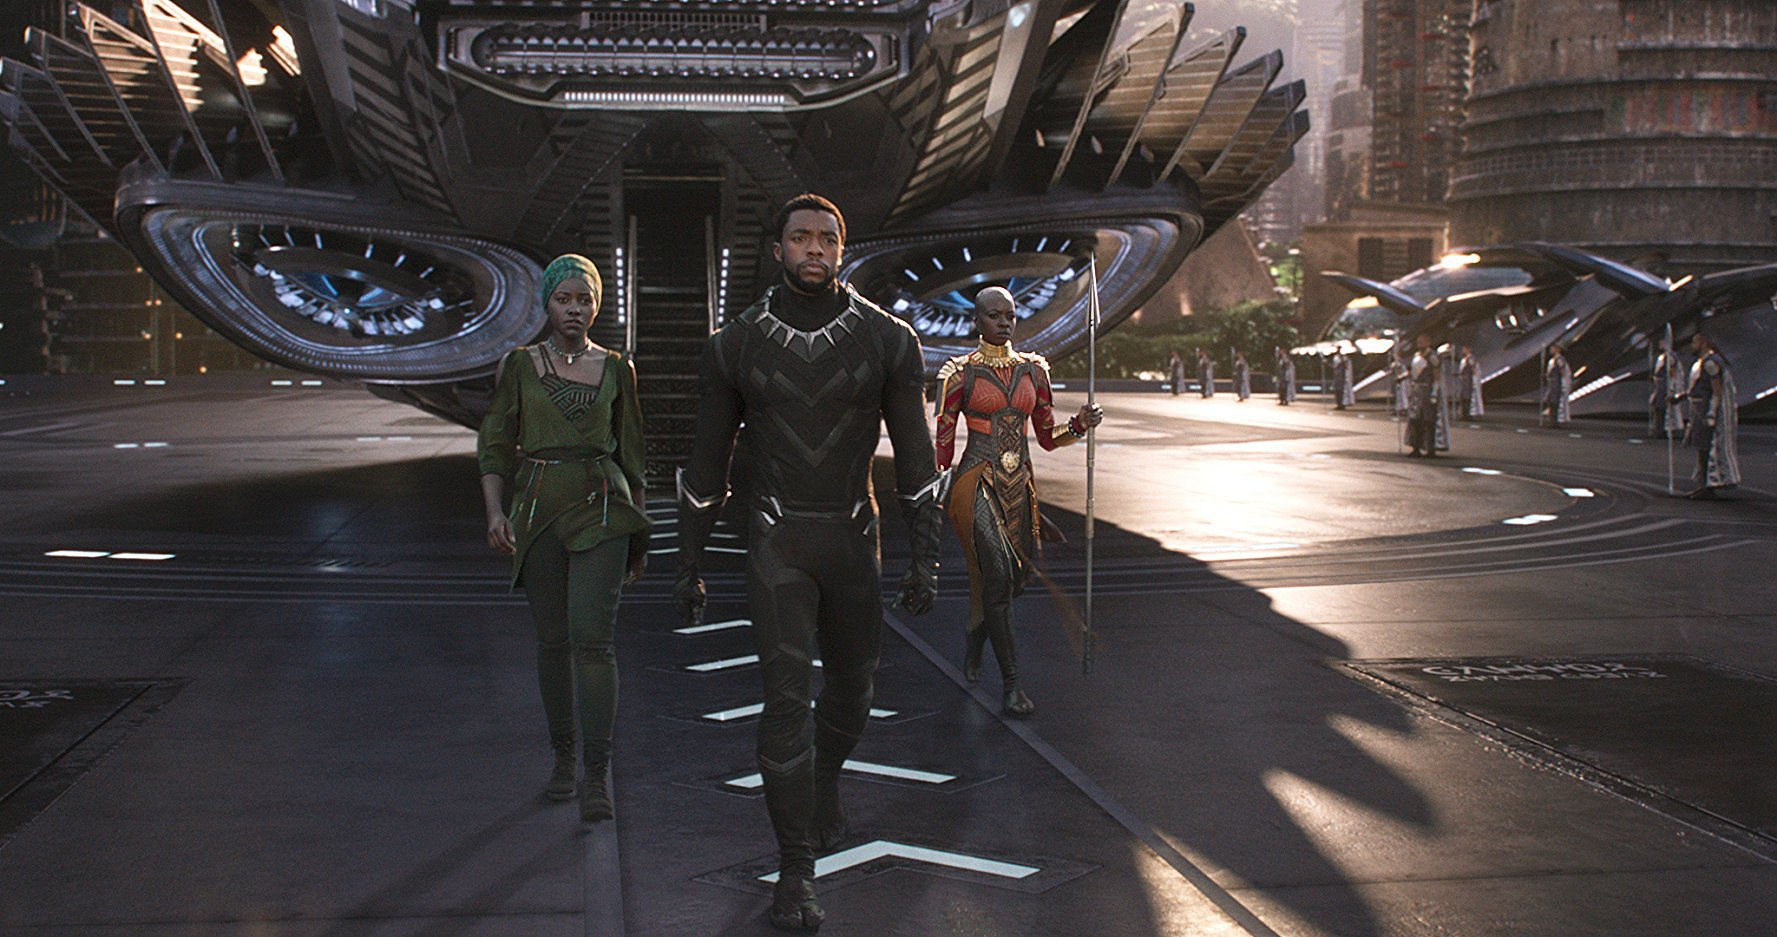 Black Panther is going to be so lit, I'm almost not ready for it